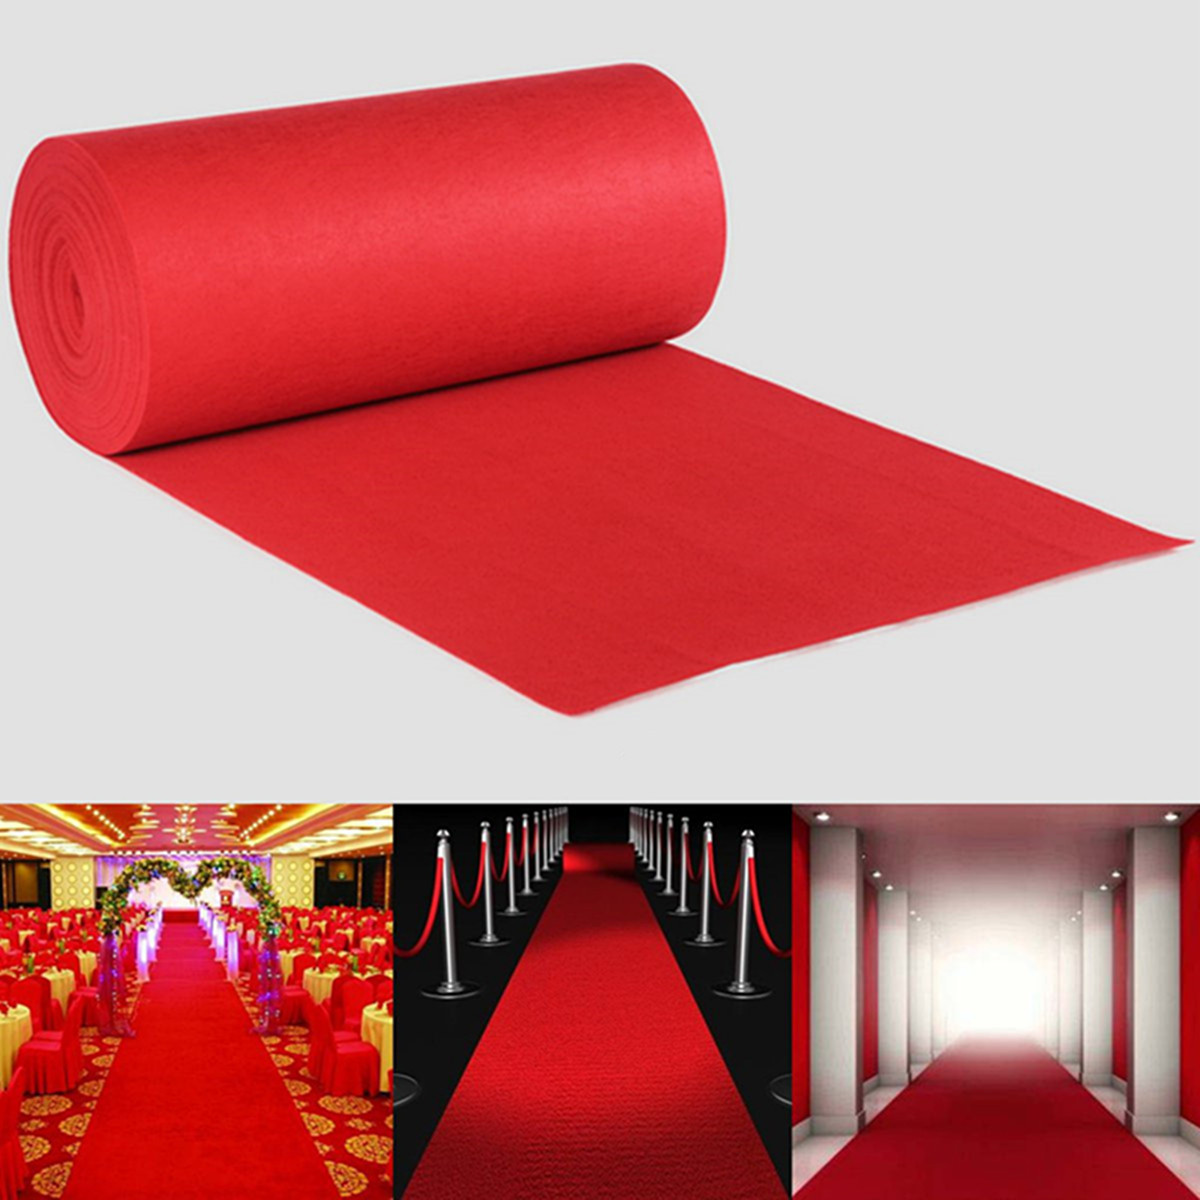 40ftx4ft Large Red Carpet Wedding Birthday Aisle Floor Runner Hollywood Party Decoration Prop